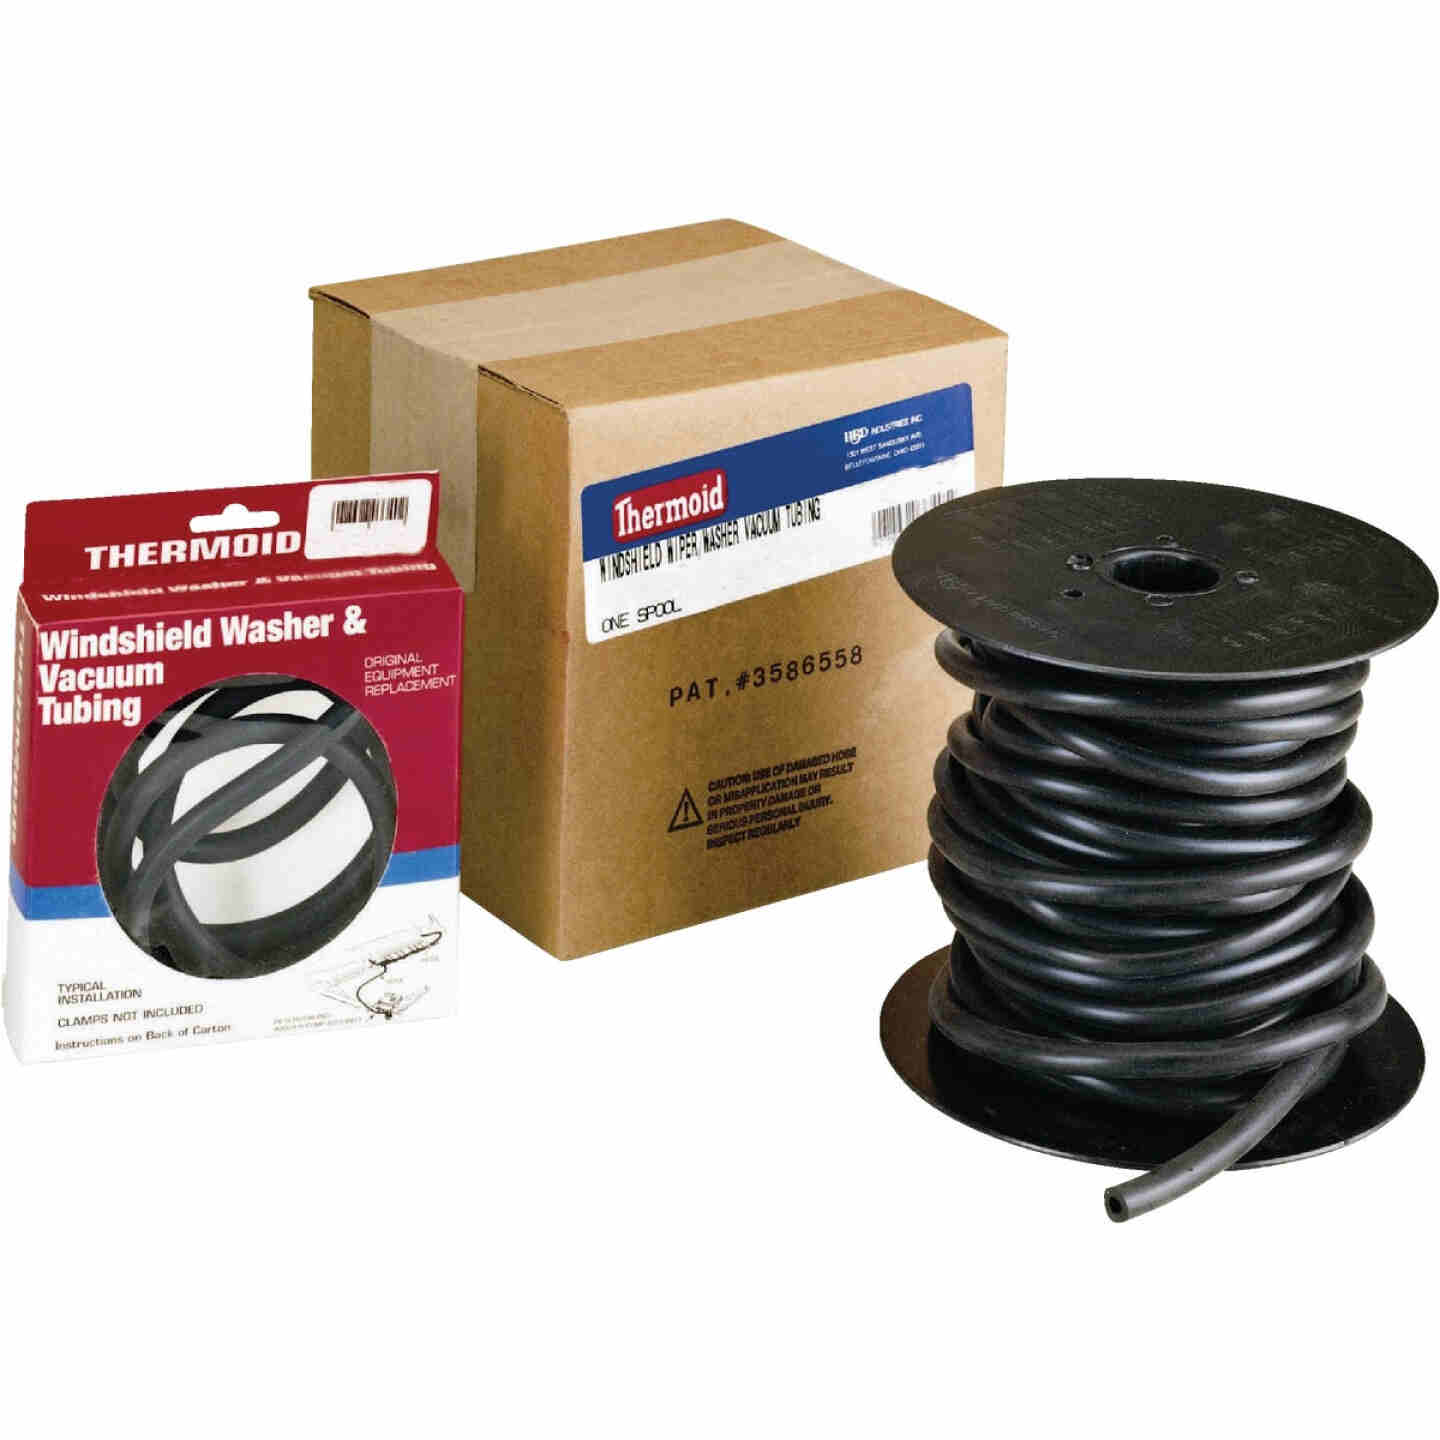 Thermoid 5/32 In. ID x 50 Ft. L. Bulk Windshield Washer Hose Image 1